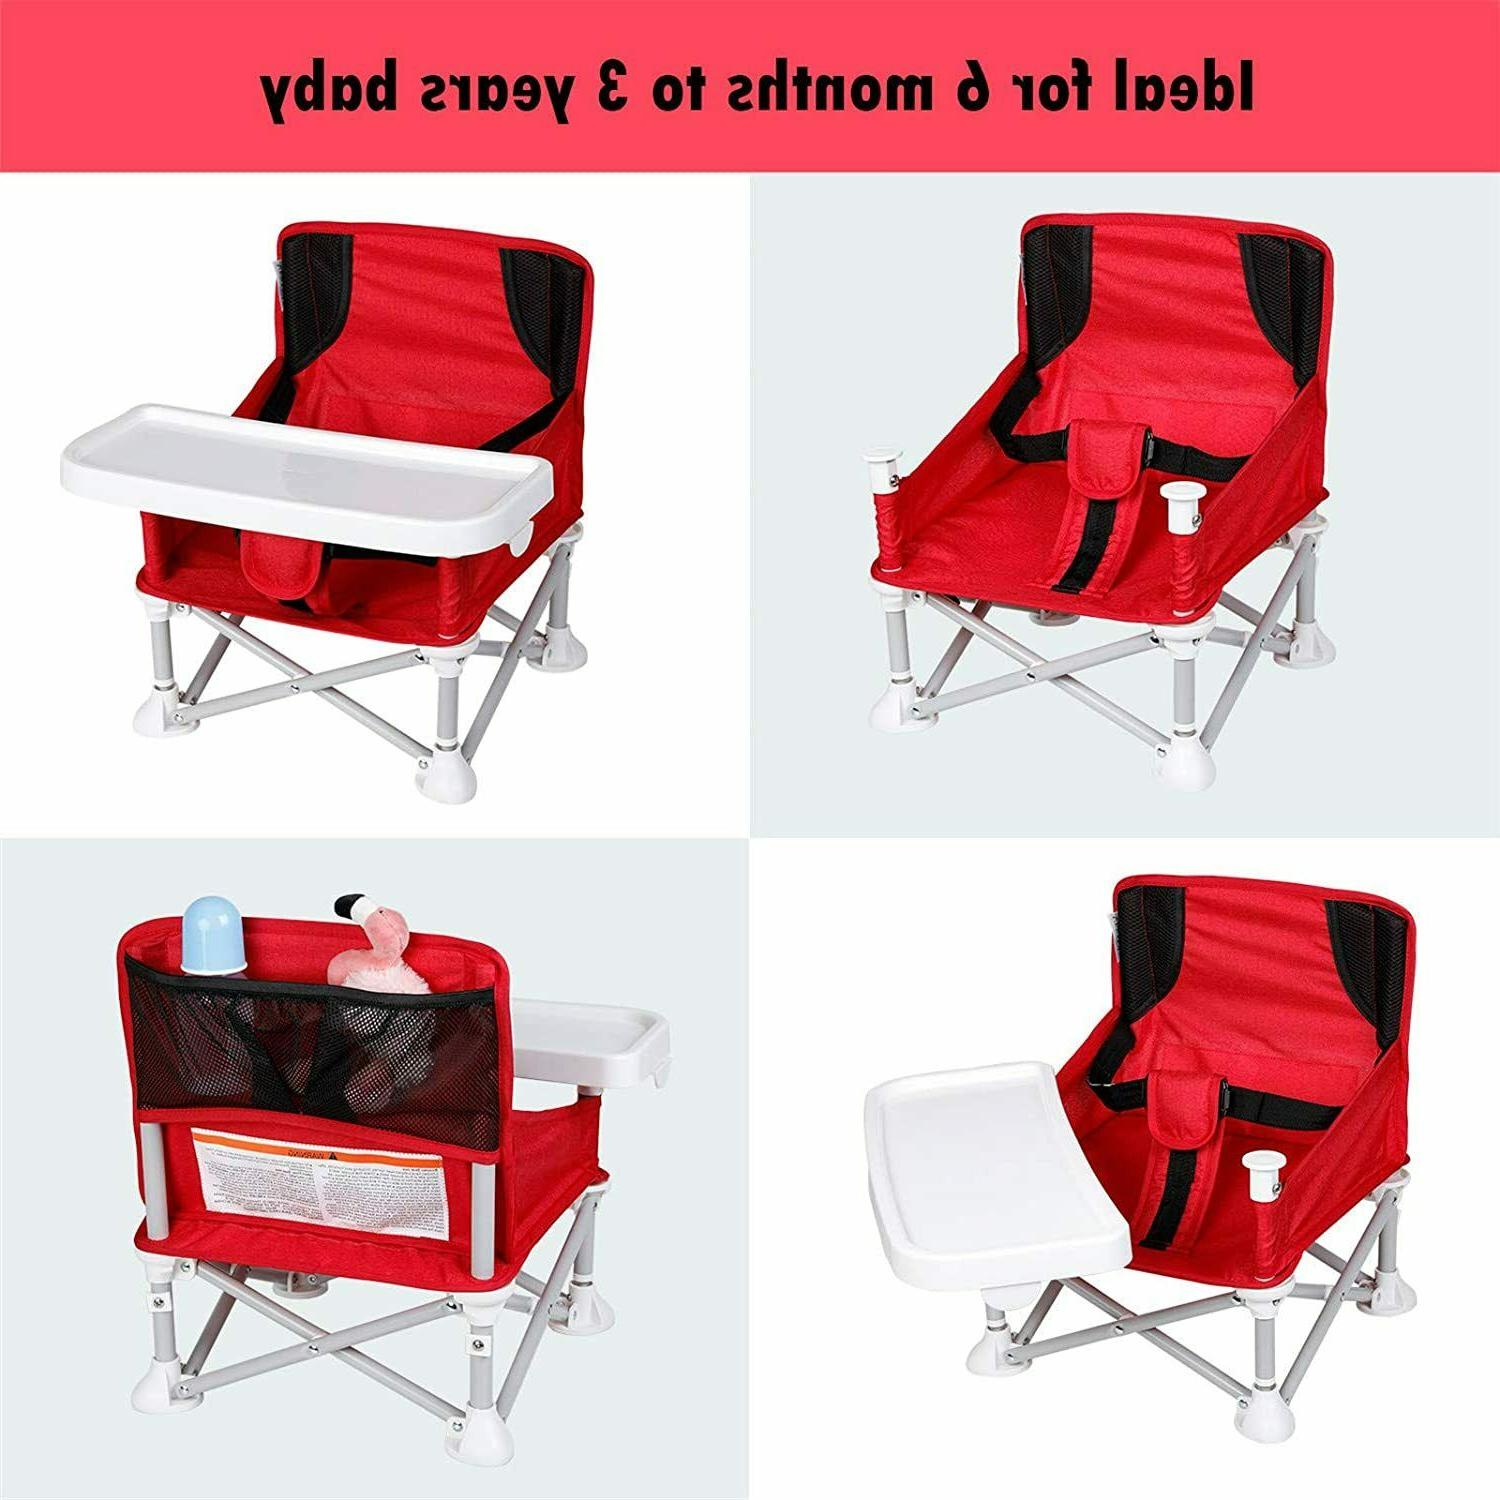 Veeyoo travel Booster w/Tray BabyTable Camping Portable